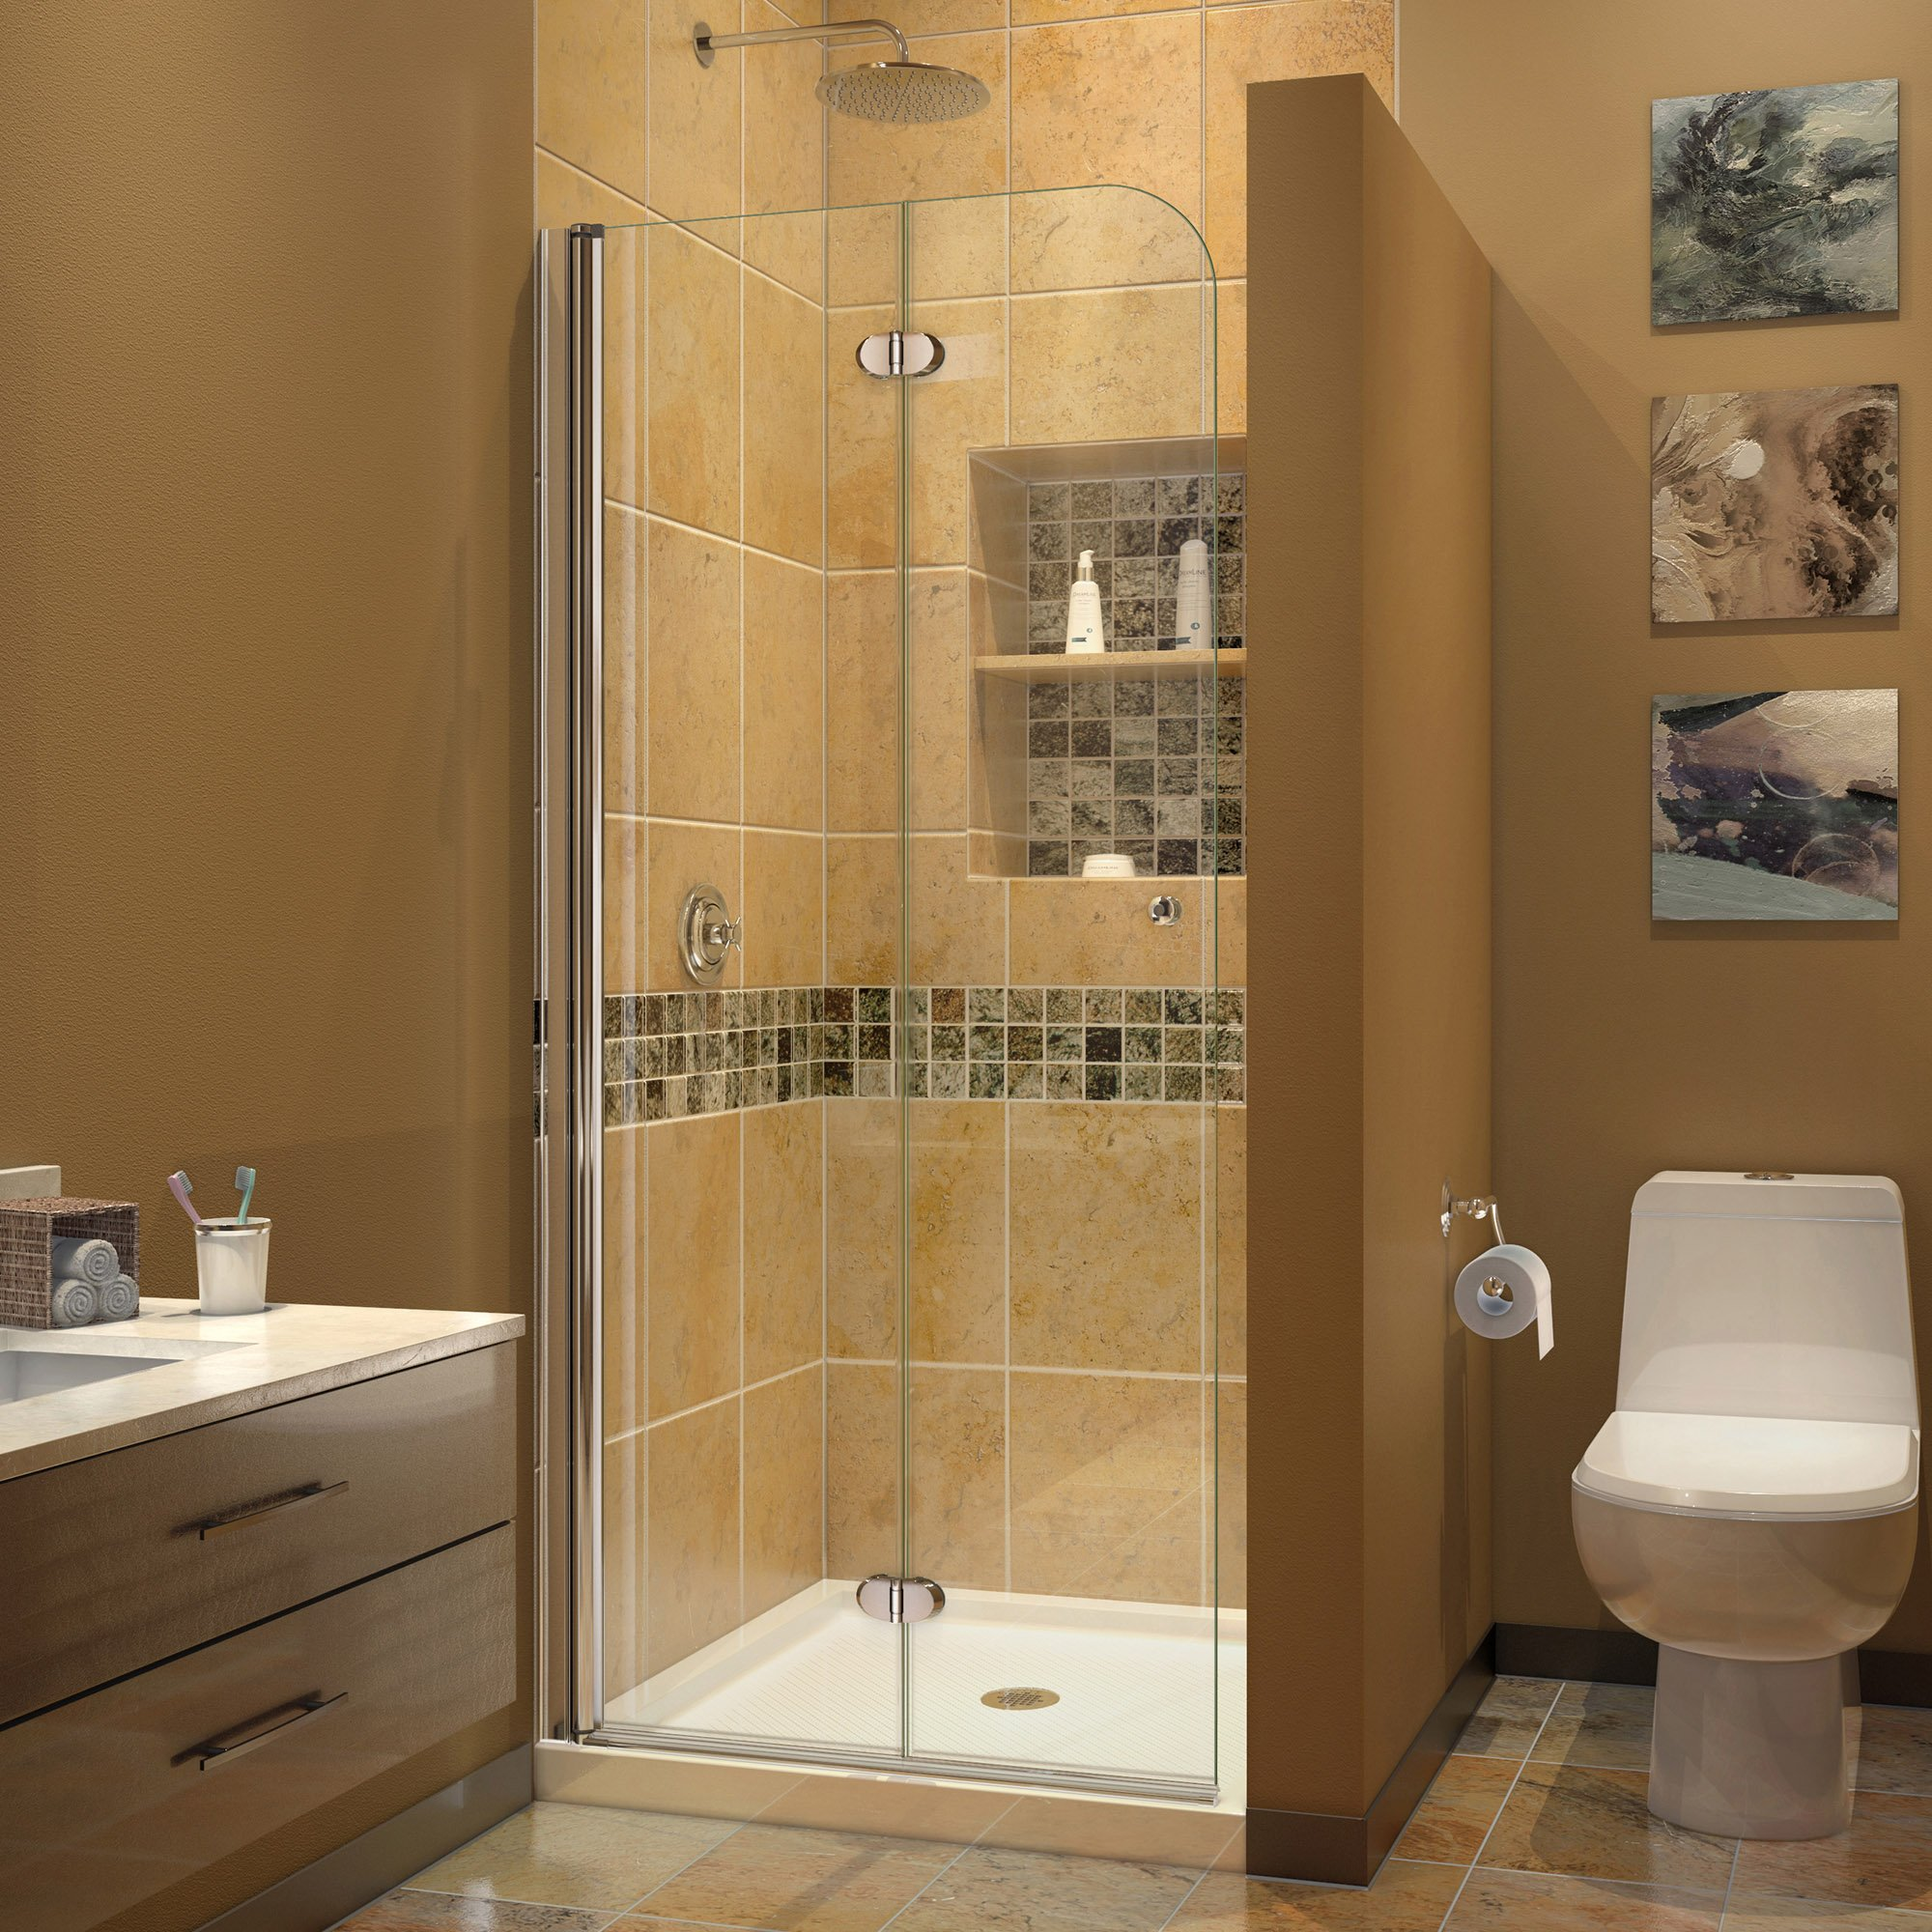 DreamLine Aqua Fold 33.5 in. Width, Frameless Hinged Shower Door, 1/4'' Glass, Chrome Finish